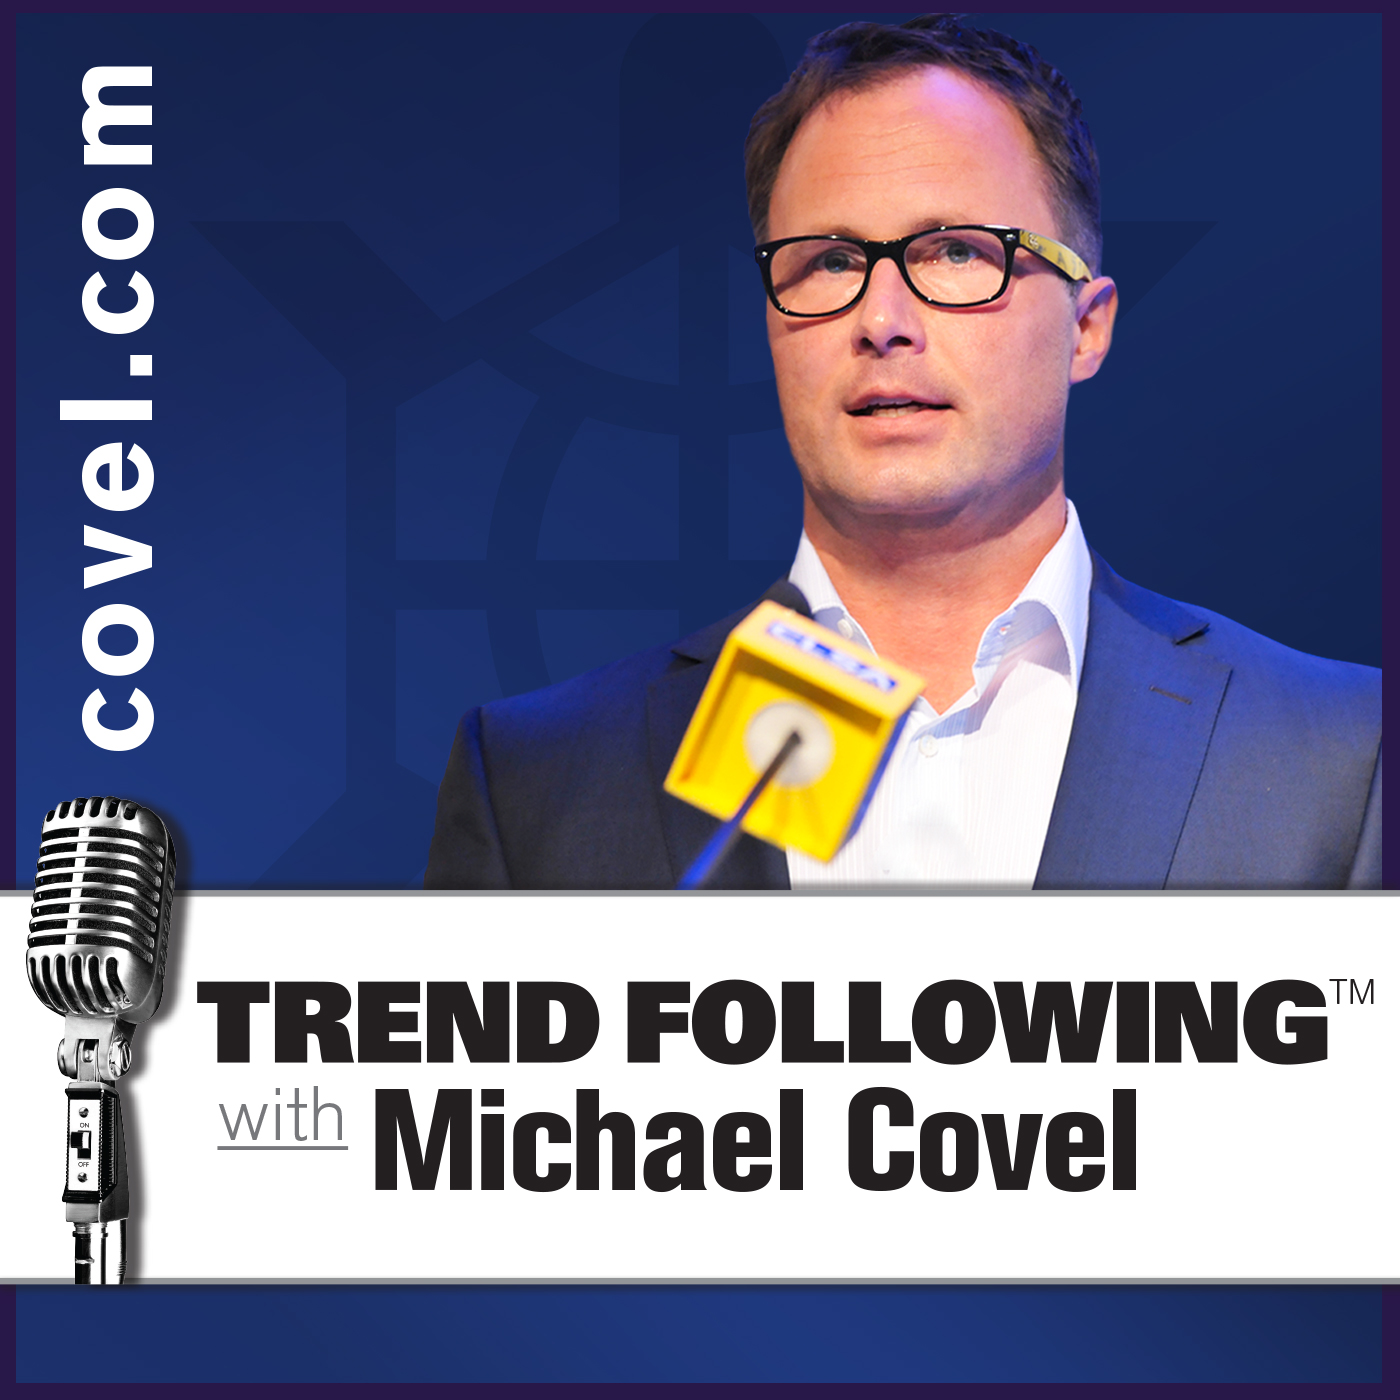 Ep. 473: Chris Lochhead Interview with Michael Covel on Trend Following Radio